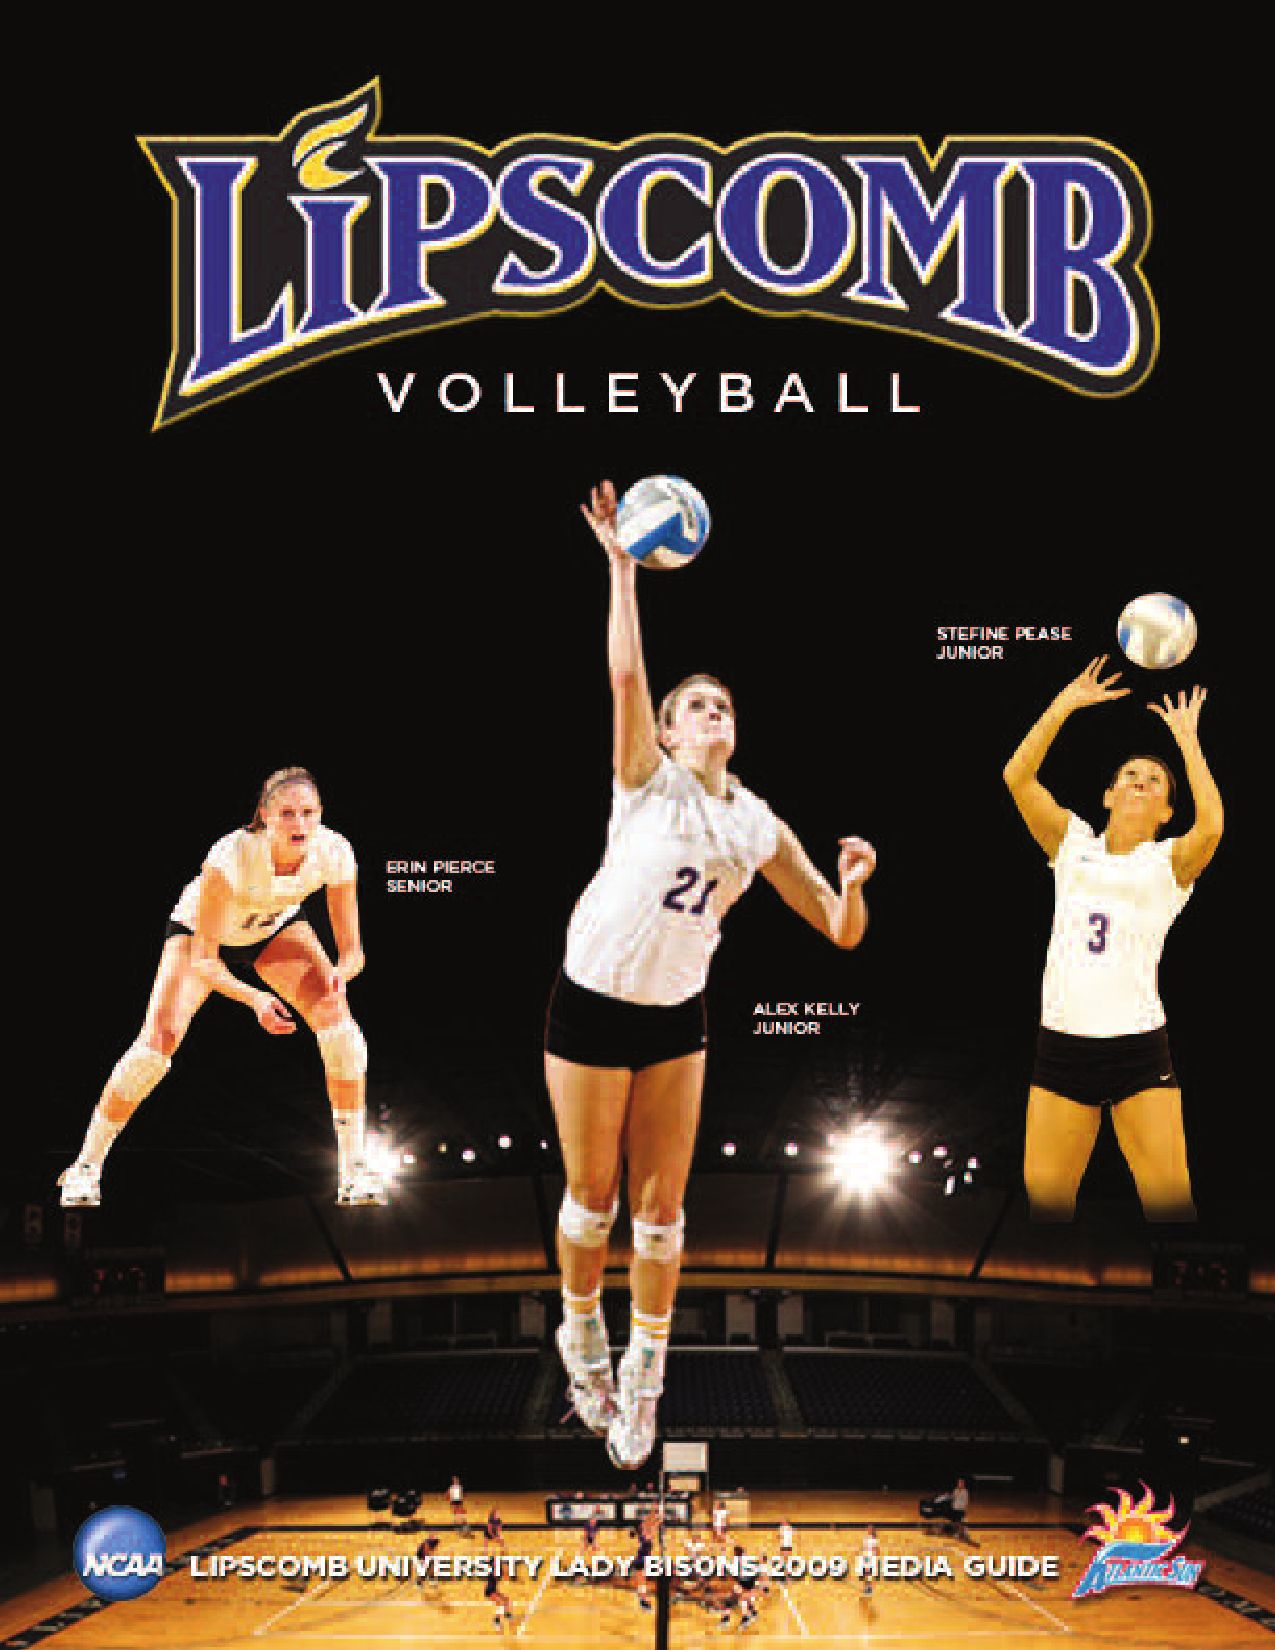 2009 Volleyball Media Guide by Lipscomb University Athletics